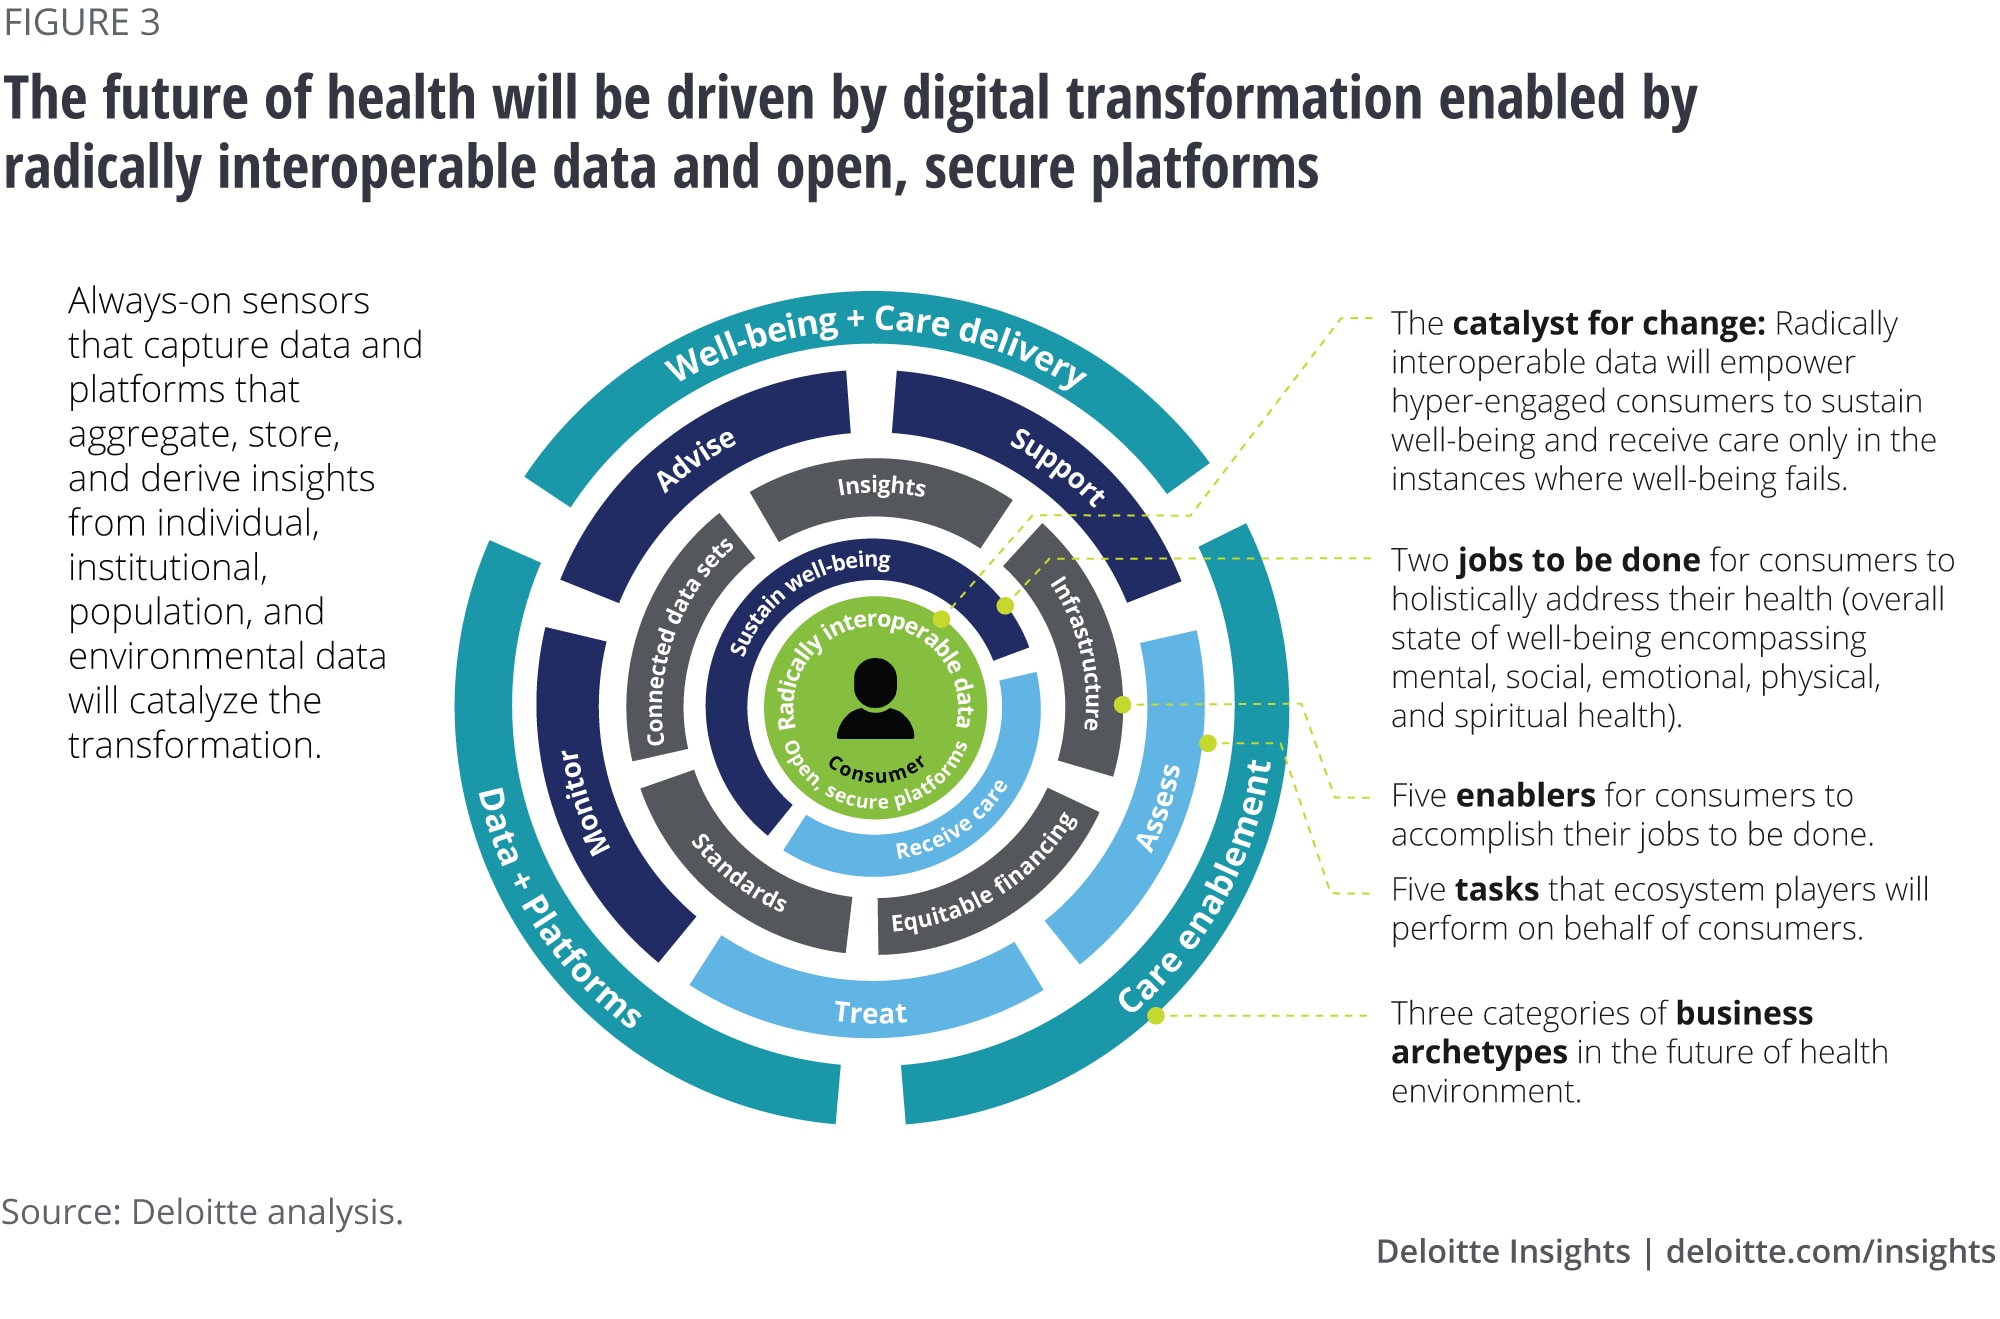 The future of health will be driven by digital transformation enabled by radically interoperable data and open, secure platforms